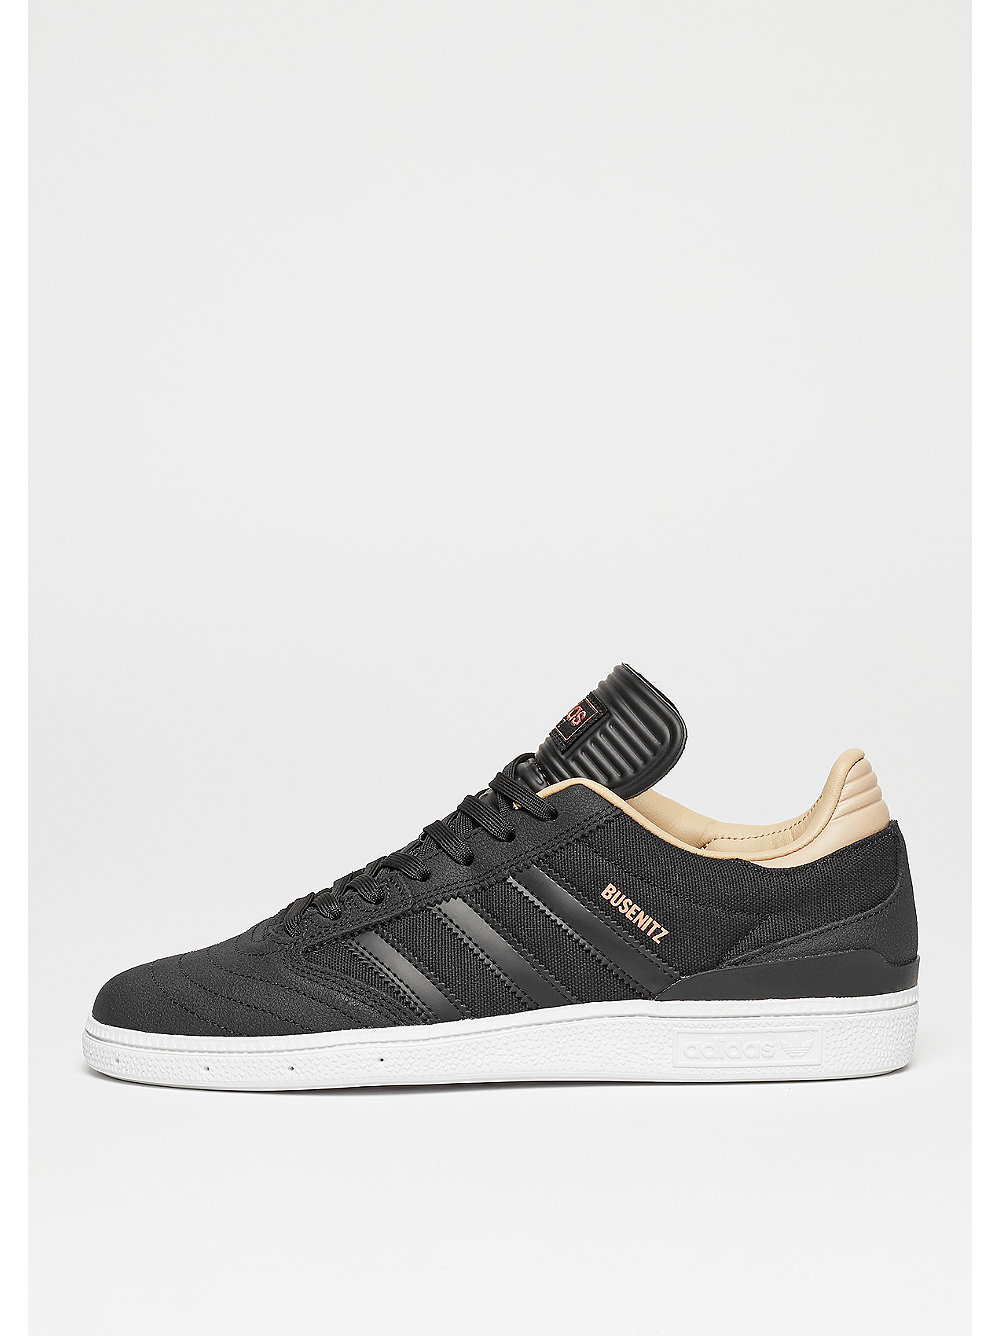 adidas Busenitz core black-white-pale nude